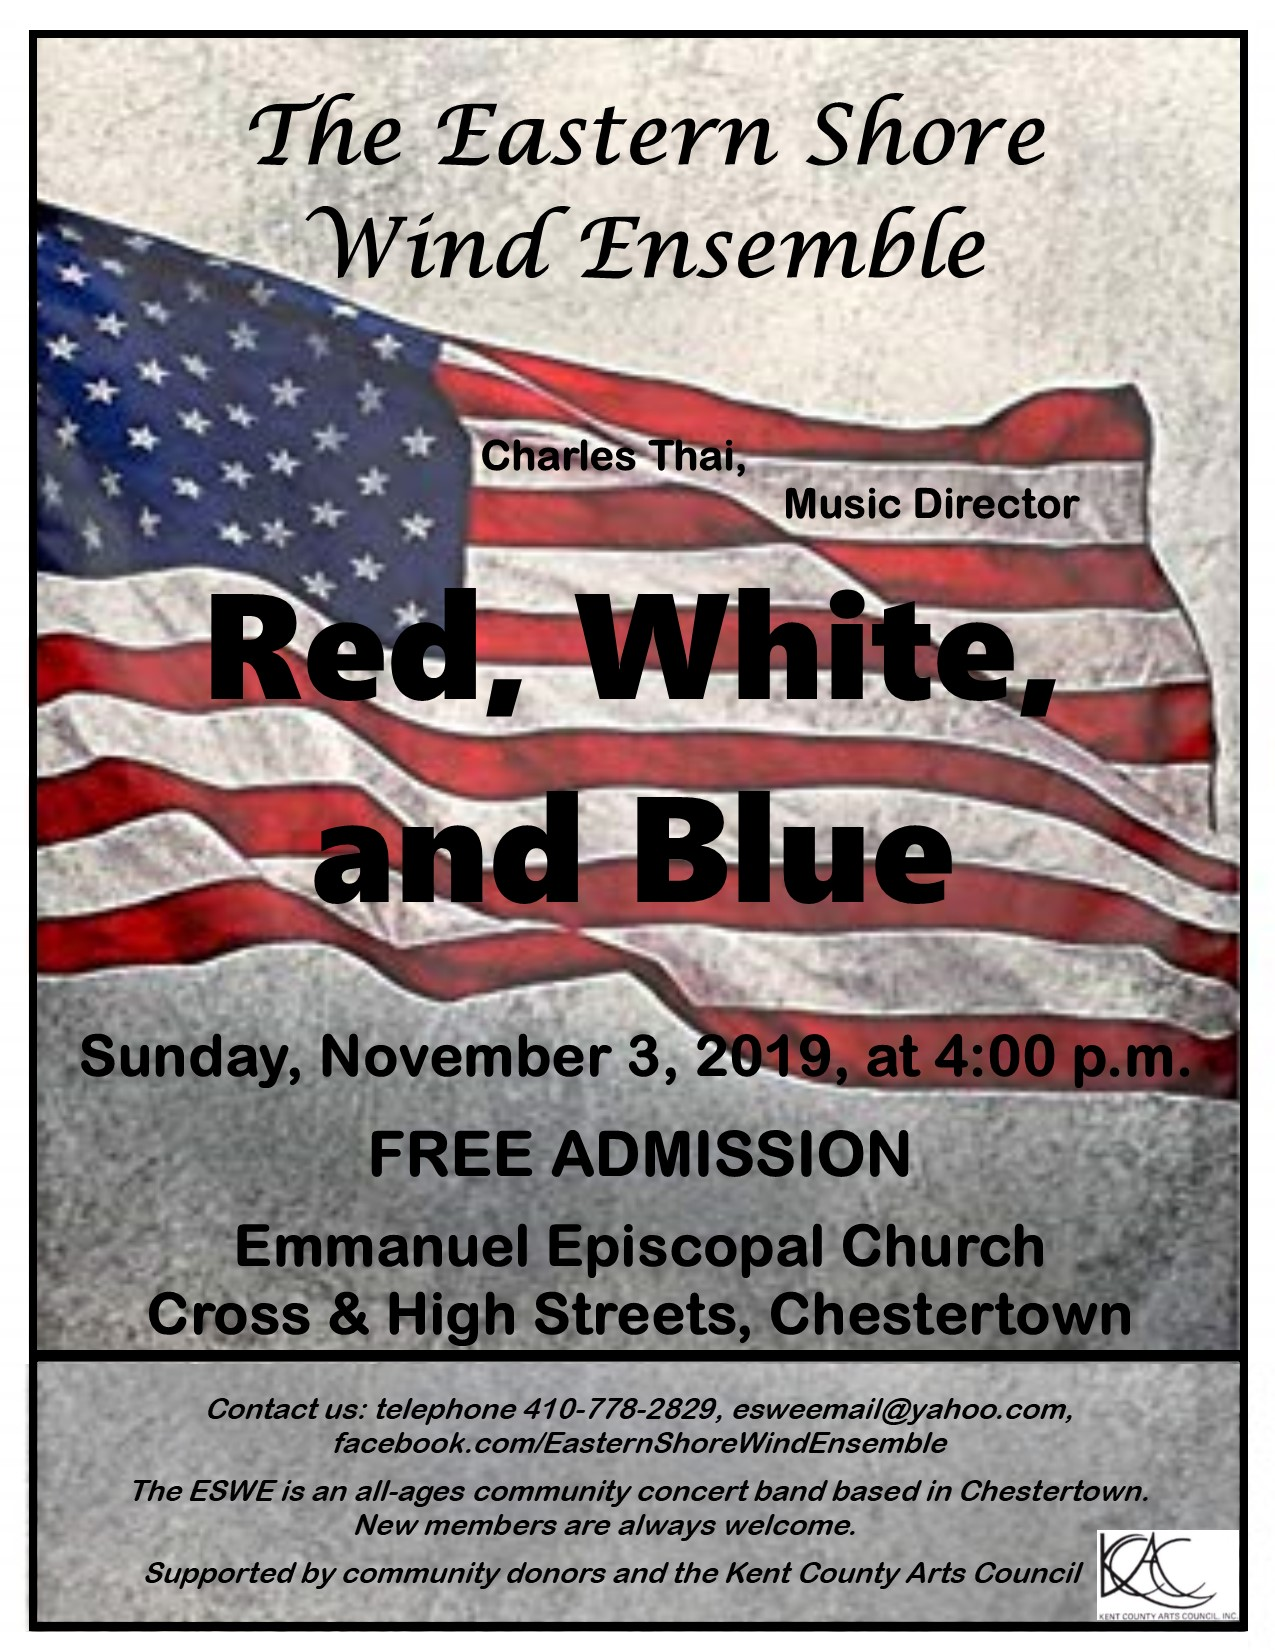 Red, White, and Blue: A Free Band Concert by the Eastern Shore Wind Ensemble